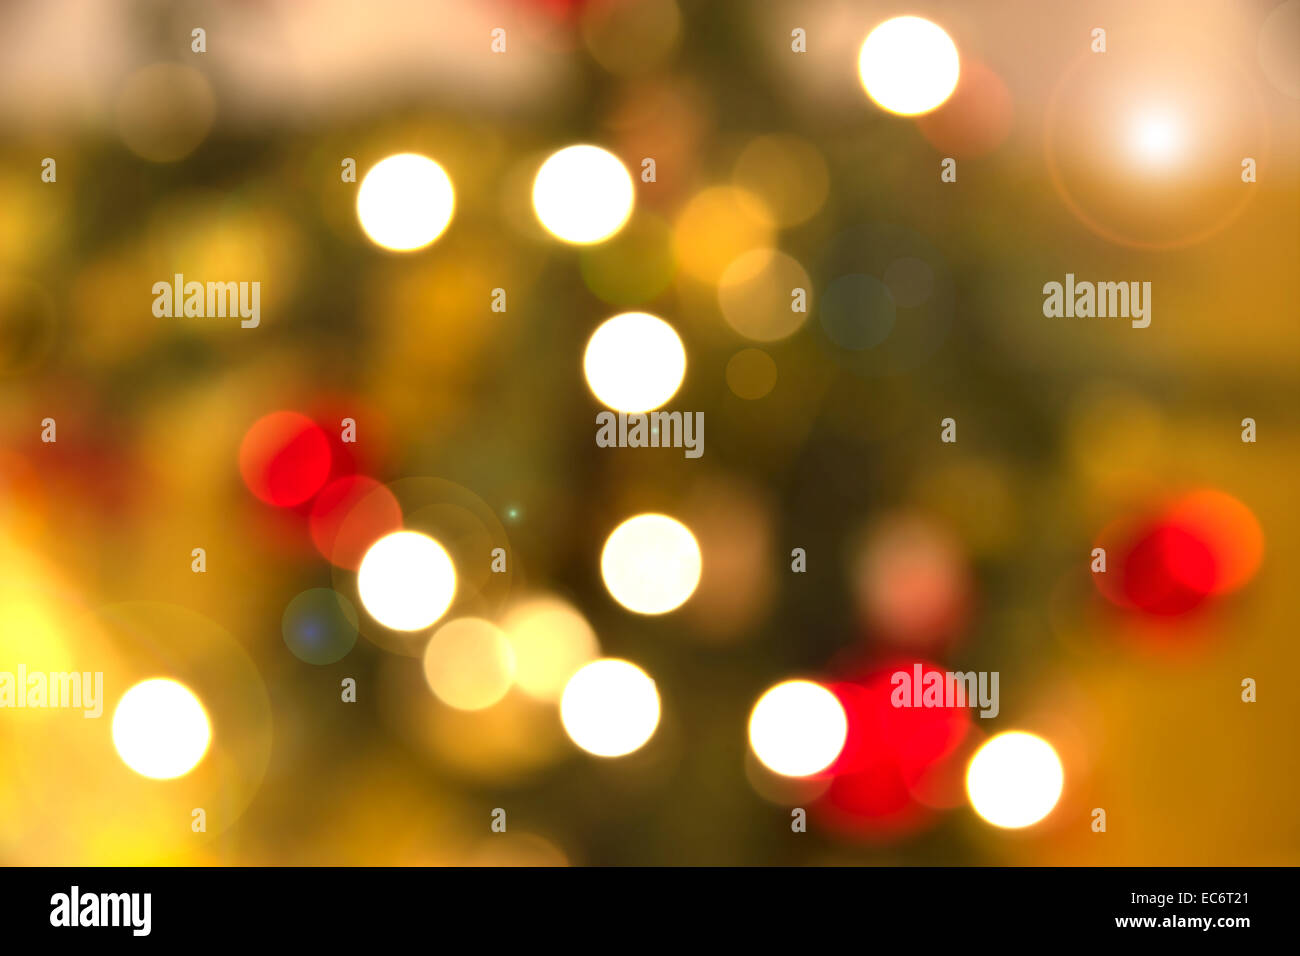 Abstract Christmas lights with aperture effect - Stock Image